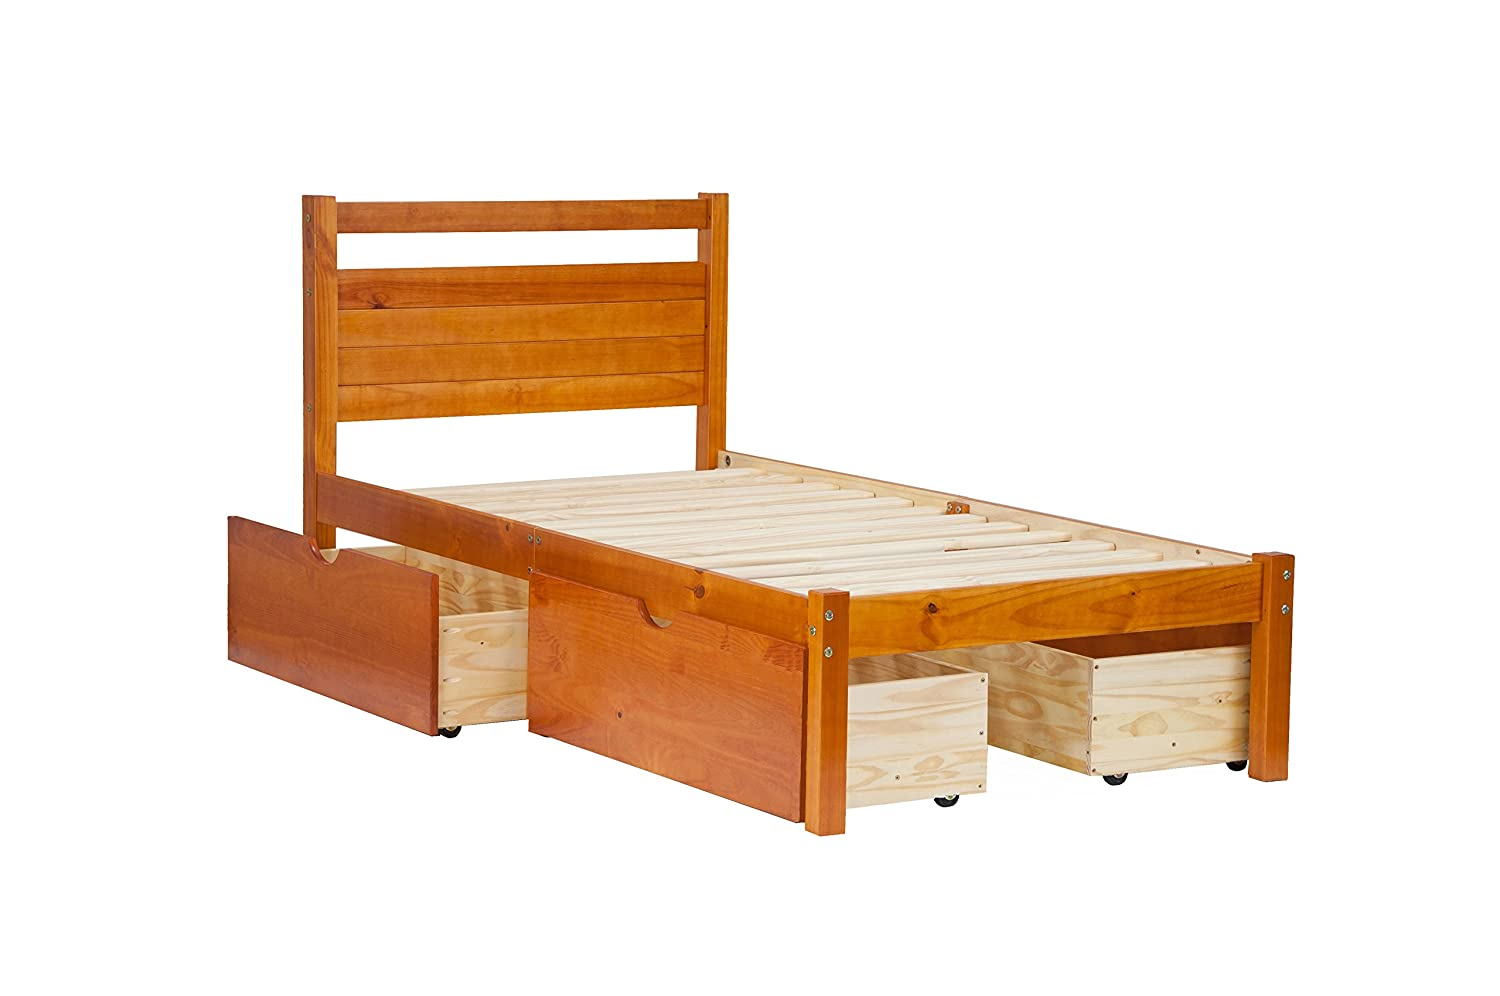 "Amazon.com: 100% Solid Wood Bronx Twin Bed-in-a-Box by Palace Imports, Honey Pine Color, 41.5""W x 39.5""H x 79""L, 12 Slats Included."